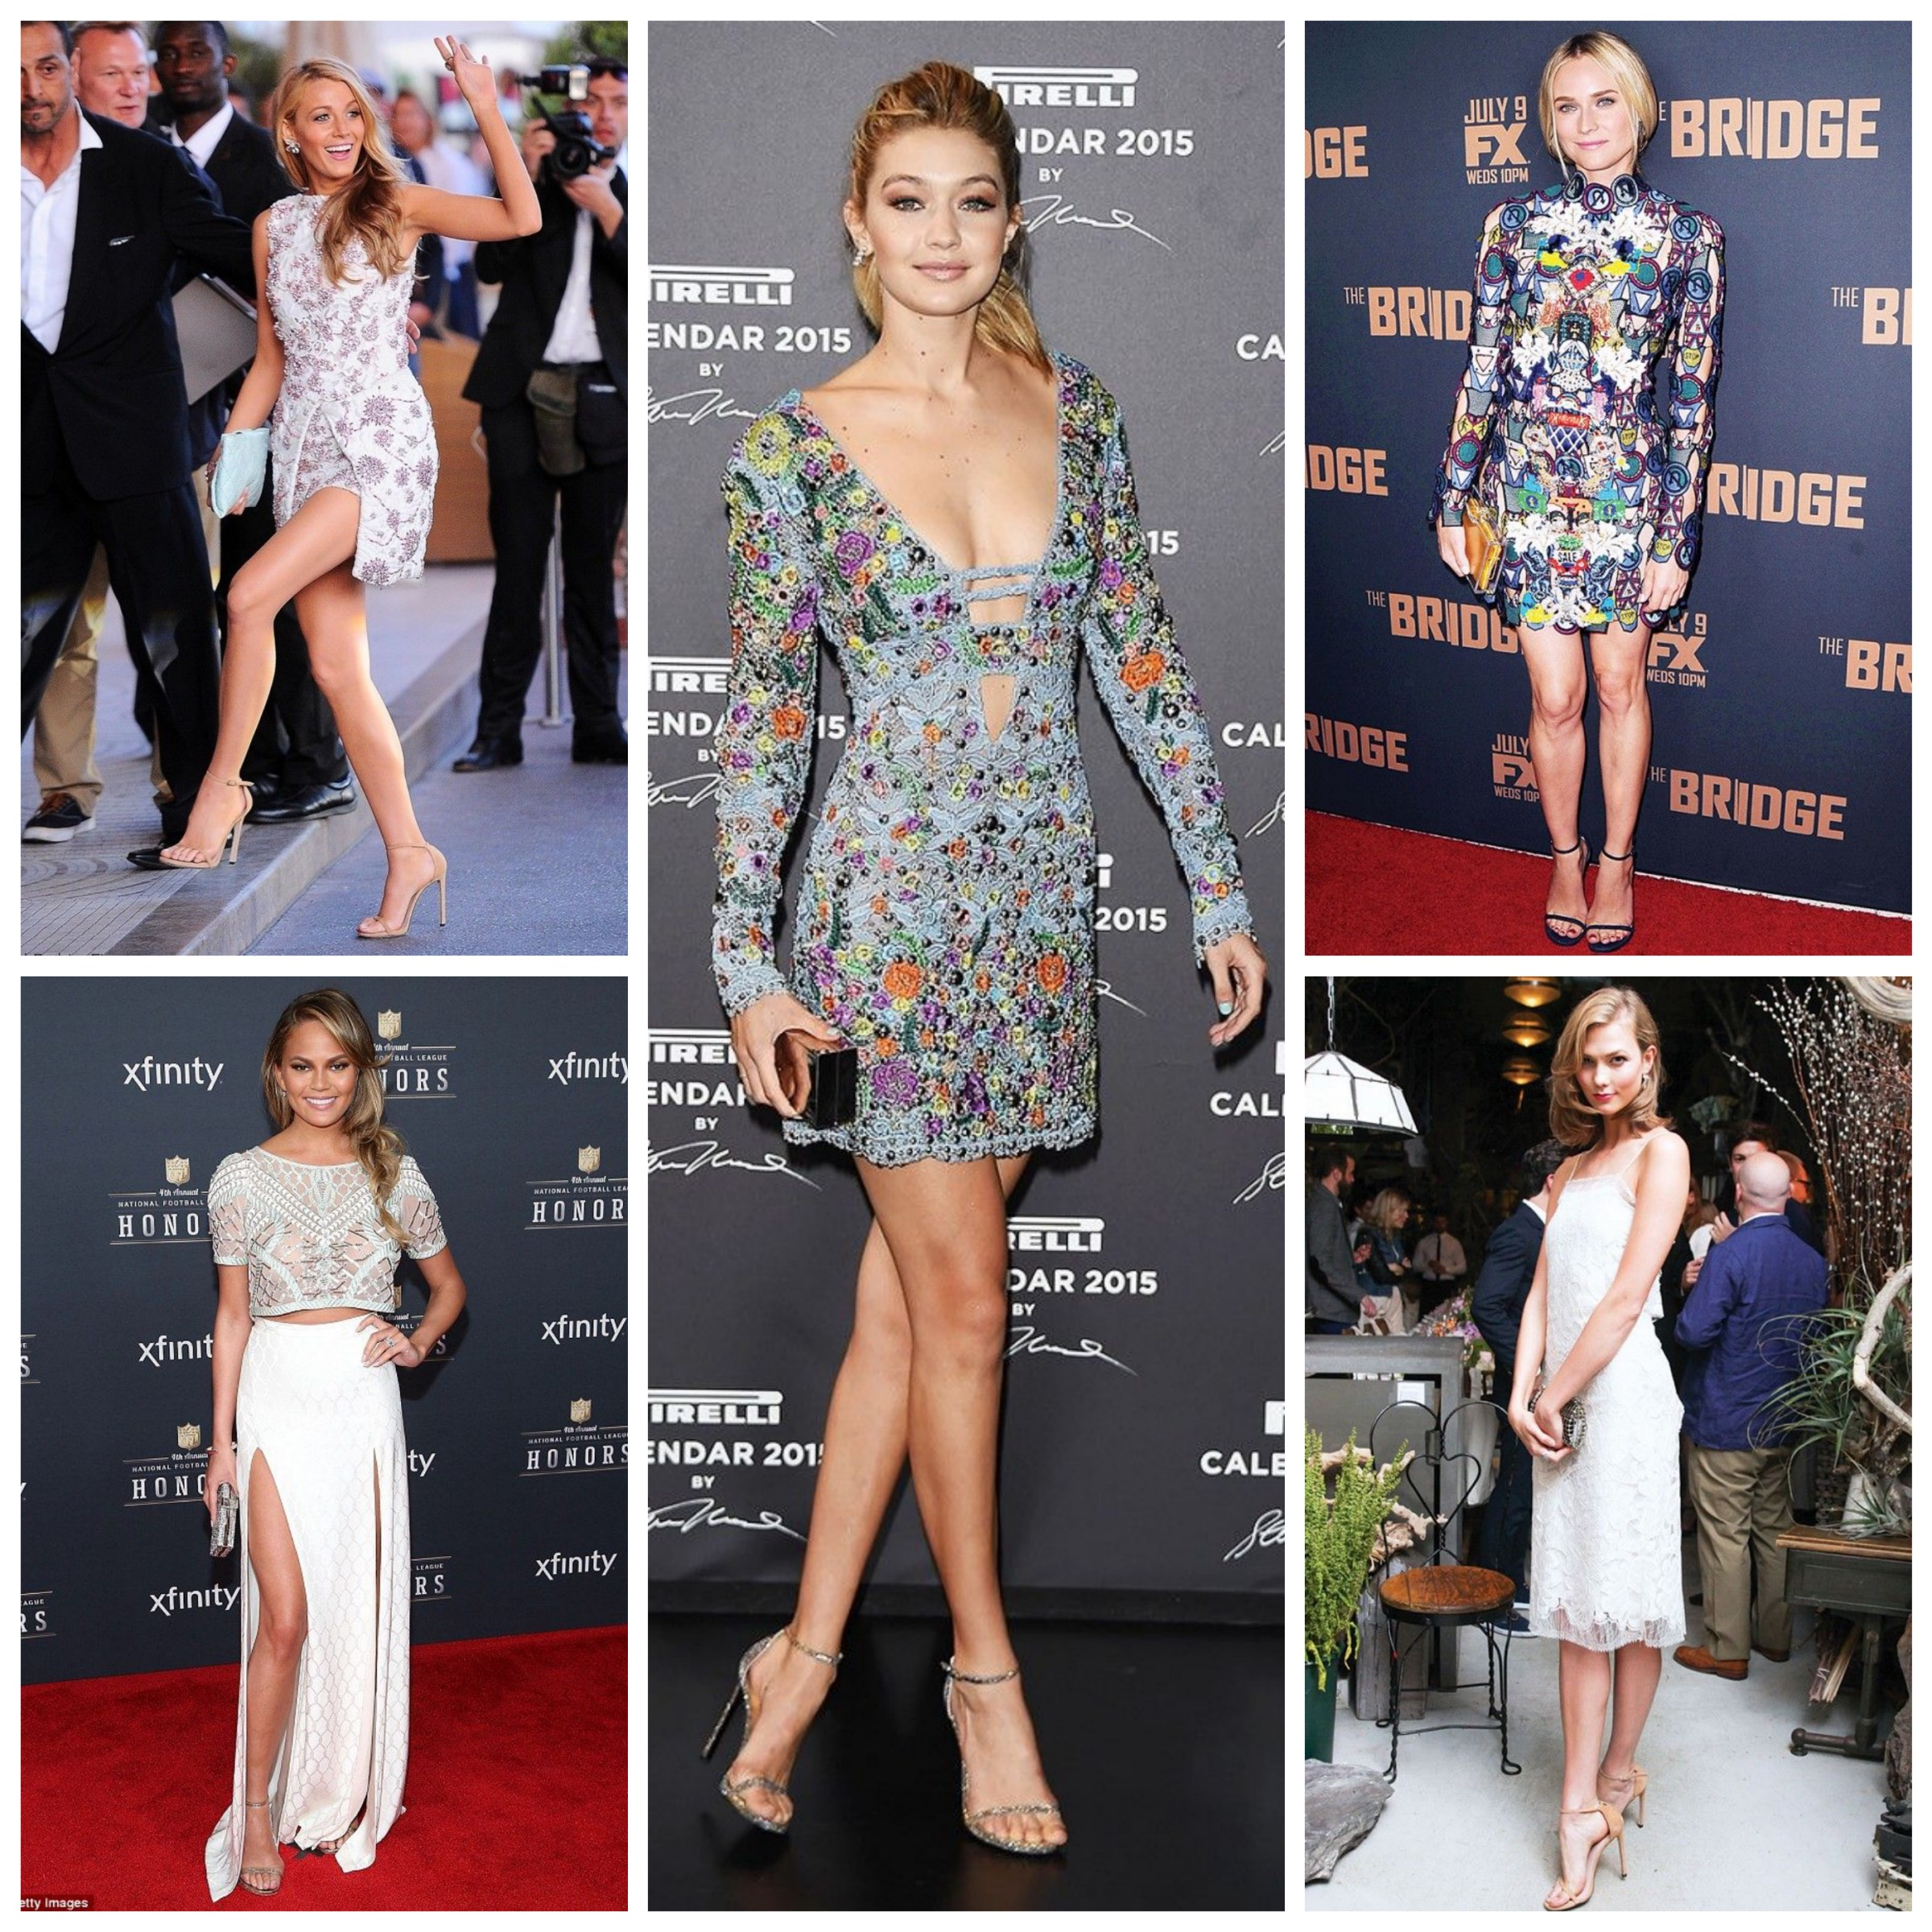 Stuart Weitzman Nudist Worn by Celebrities